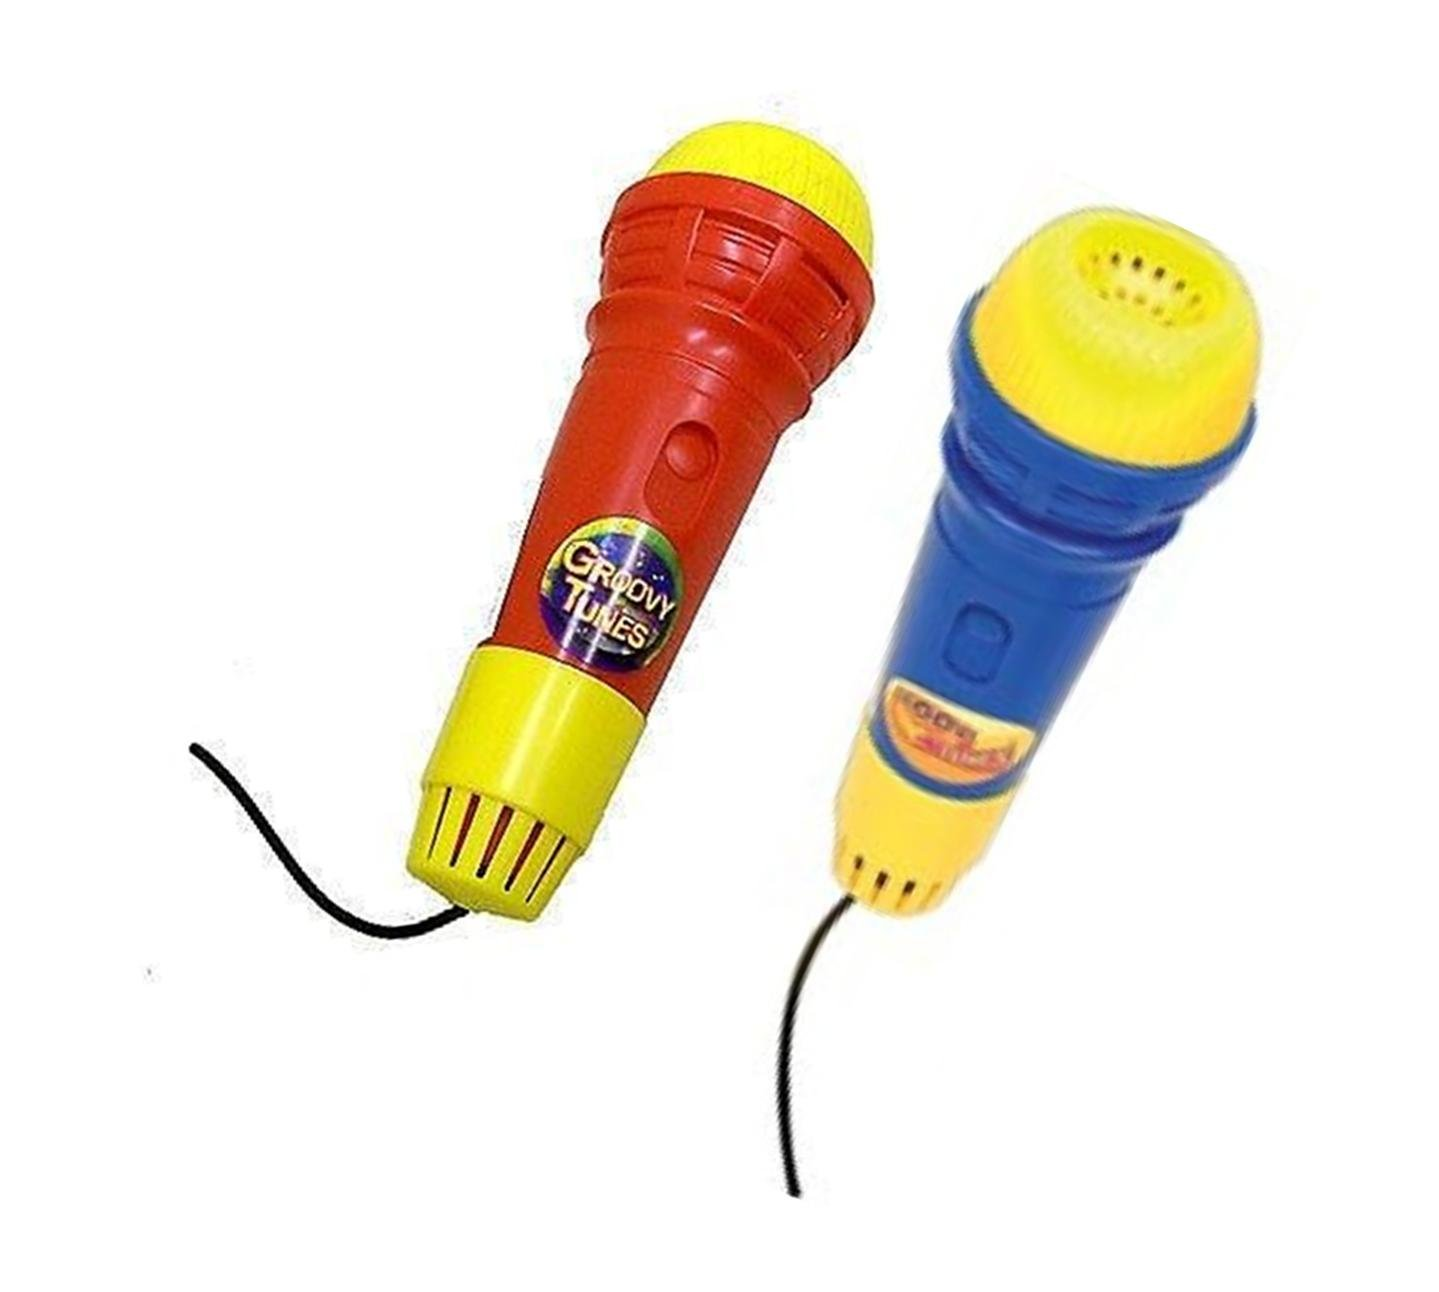 Groovy Tunes Echo Microphone (2 No. - 1 Blue, 1 Red) by HTI